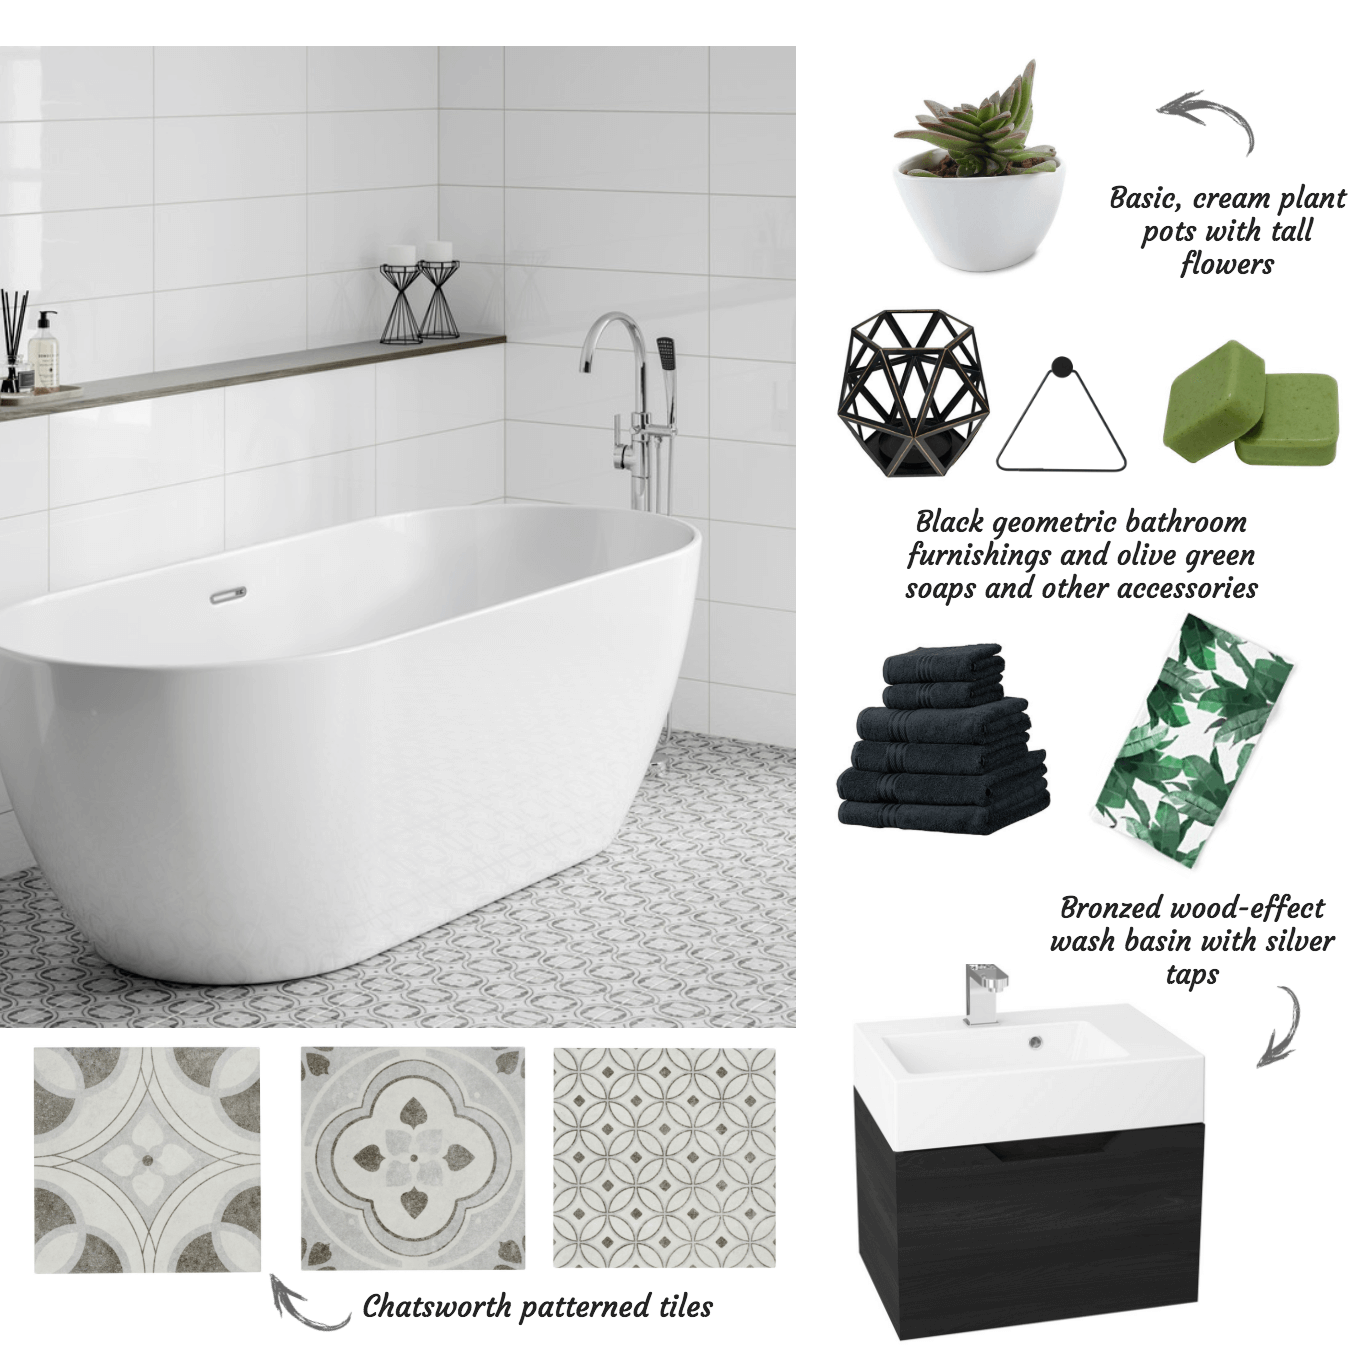 Chatsworth Patterned Tiles for Wet Rooms